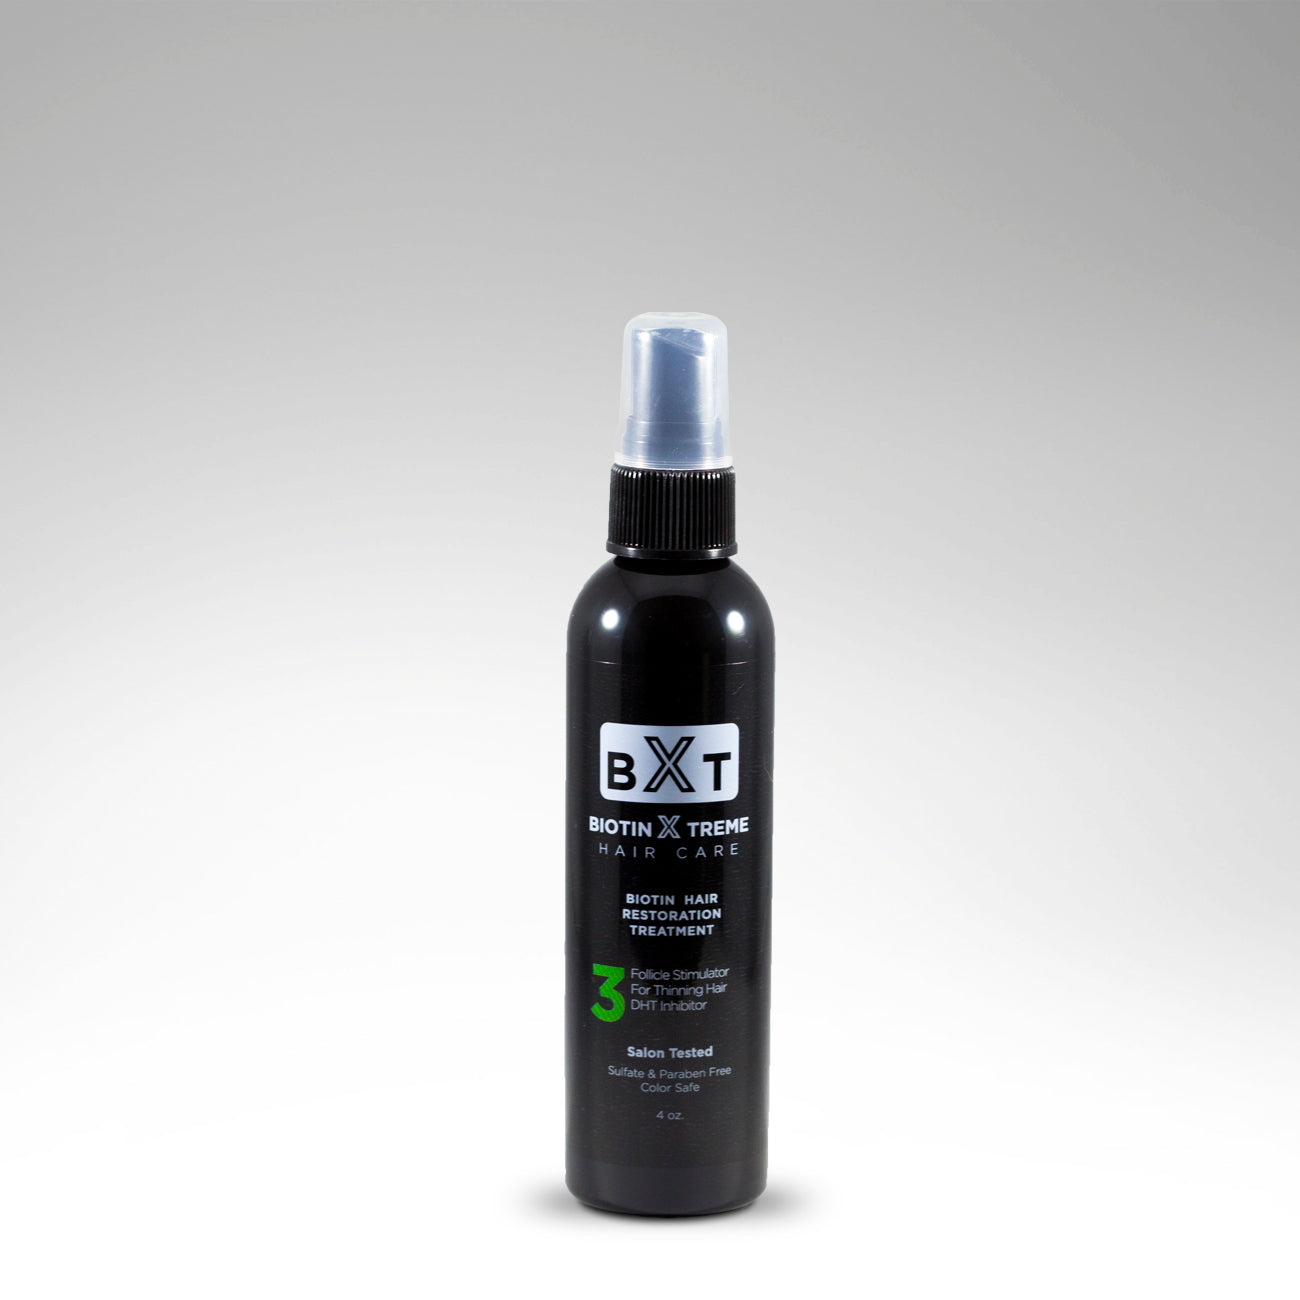 Biotin Hair Restoration Spray, Follicle Stimulator & DHT Blocker